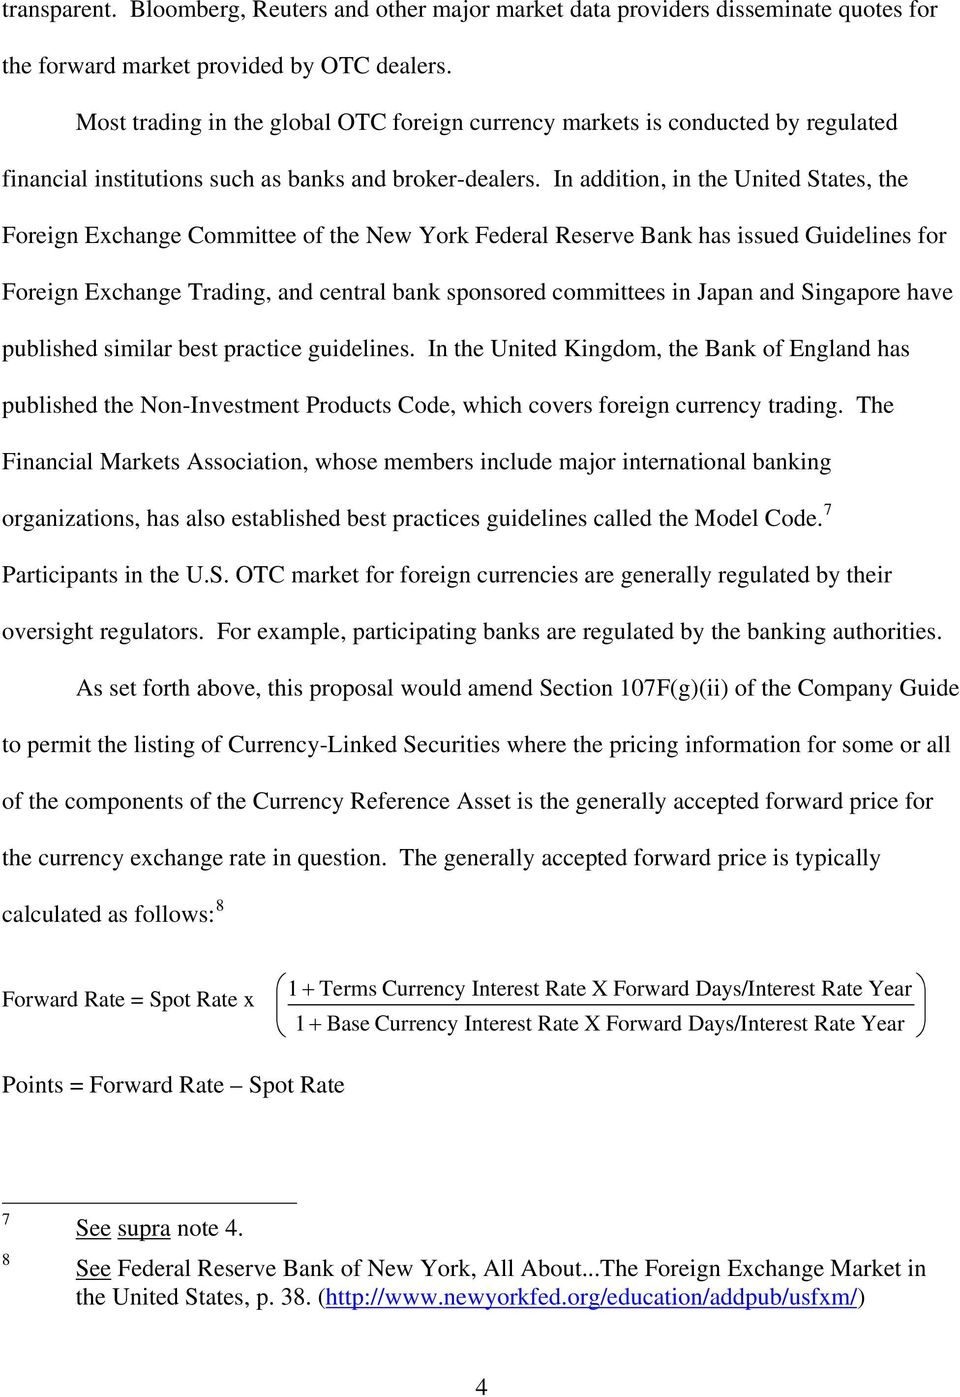 In addition, in the United States, the Foreign Exchange Committee of the New York Federal Reserve Bank has issued Guidelines for Foreign Exchange Trading, and central bank sponsored committees in